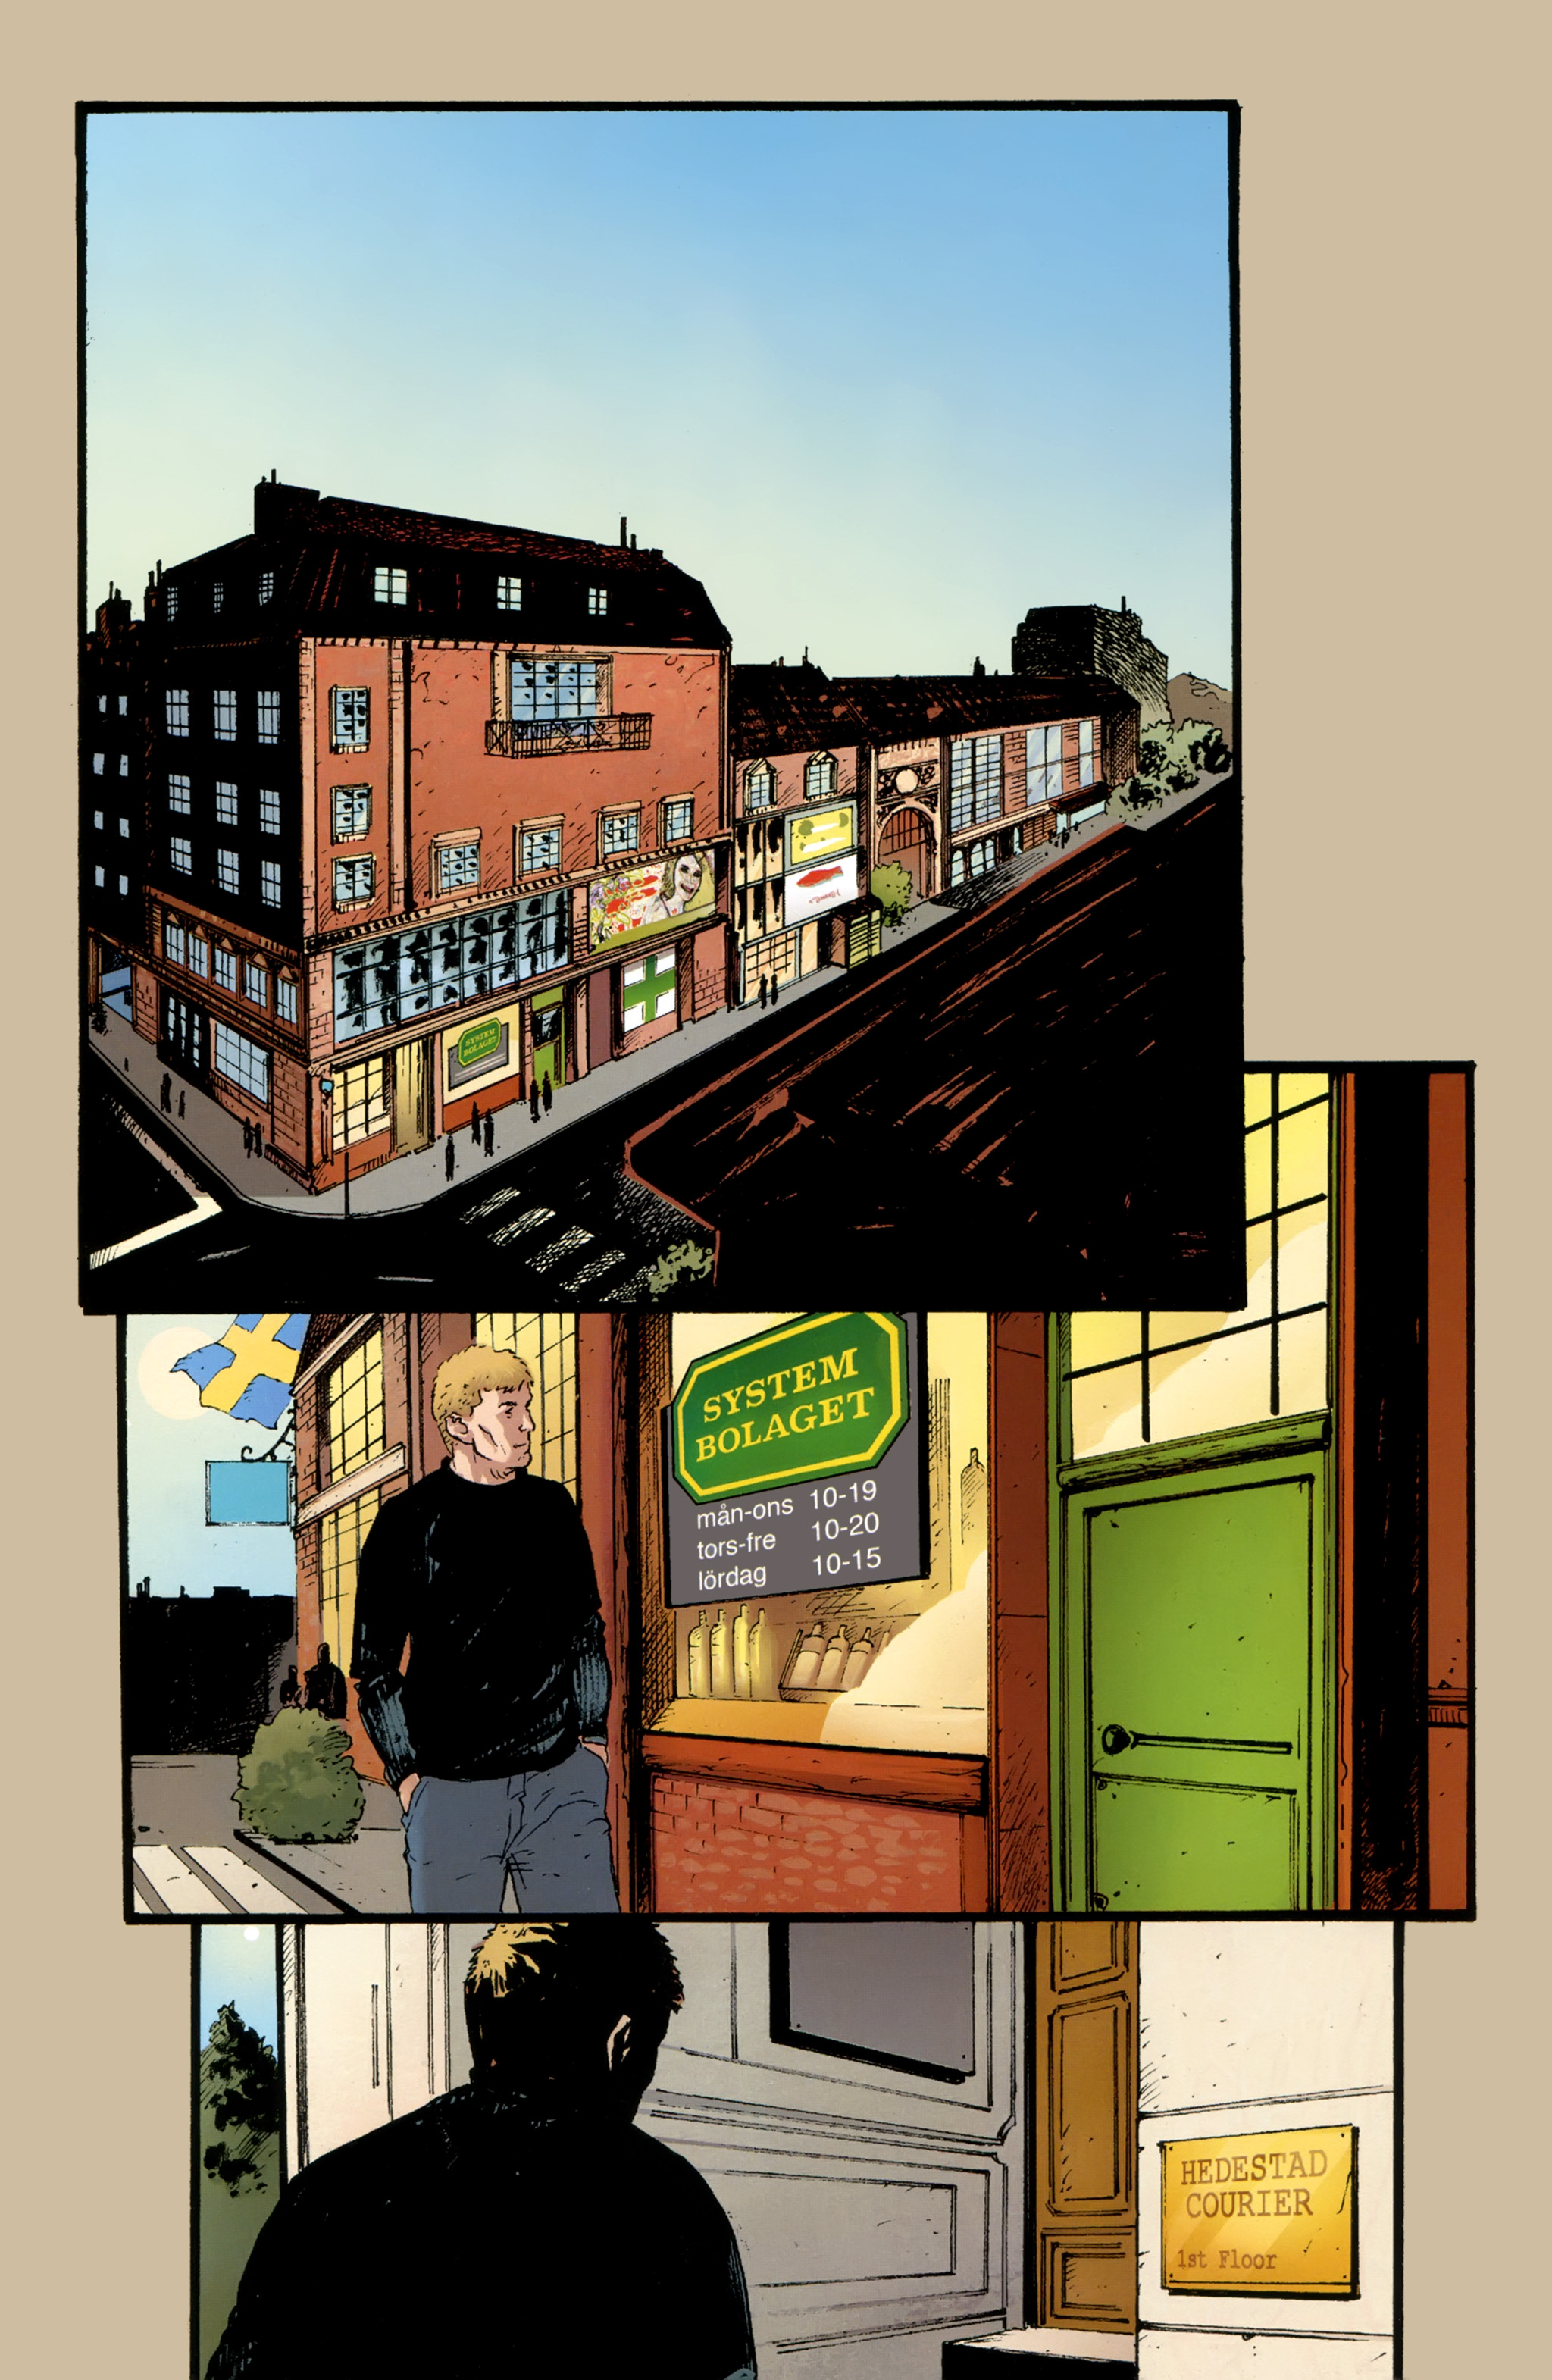 Read online The Girl With the Dragon Tattoo comic -  Issue # TPB 2 - 26